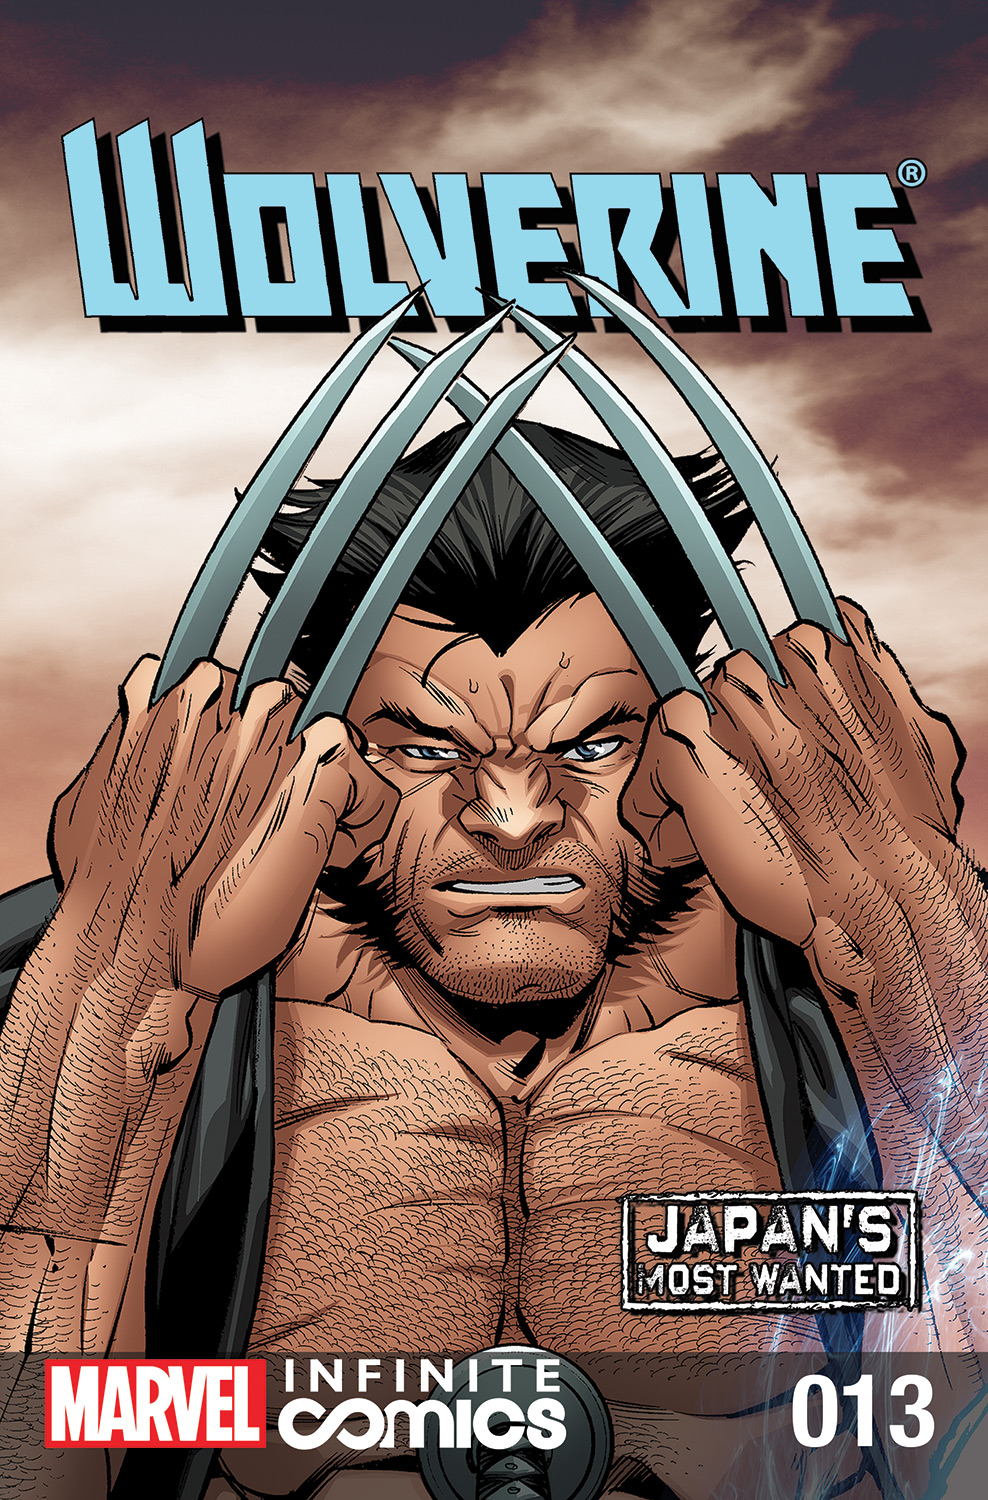 Wolverine: Japan's Most Wanted: Infinite Comic Vol 1 13